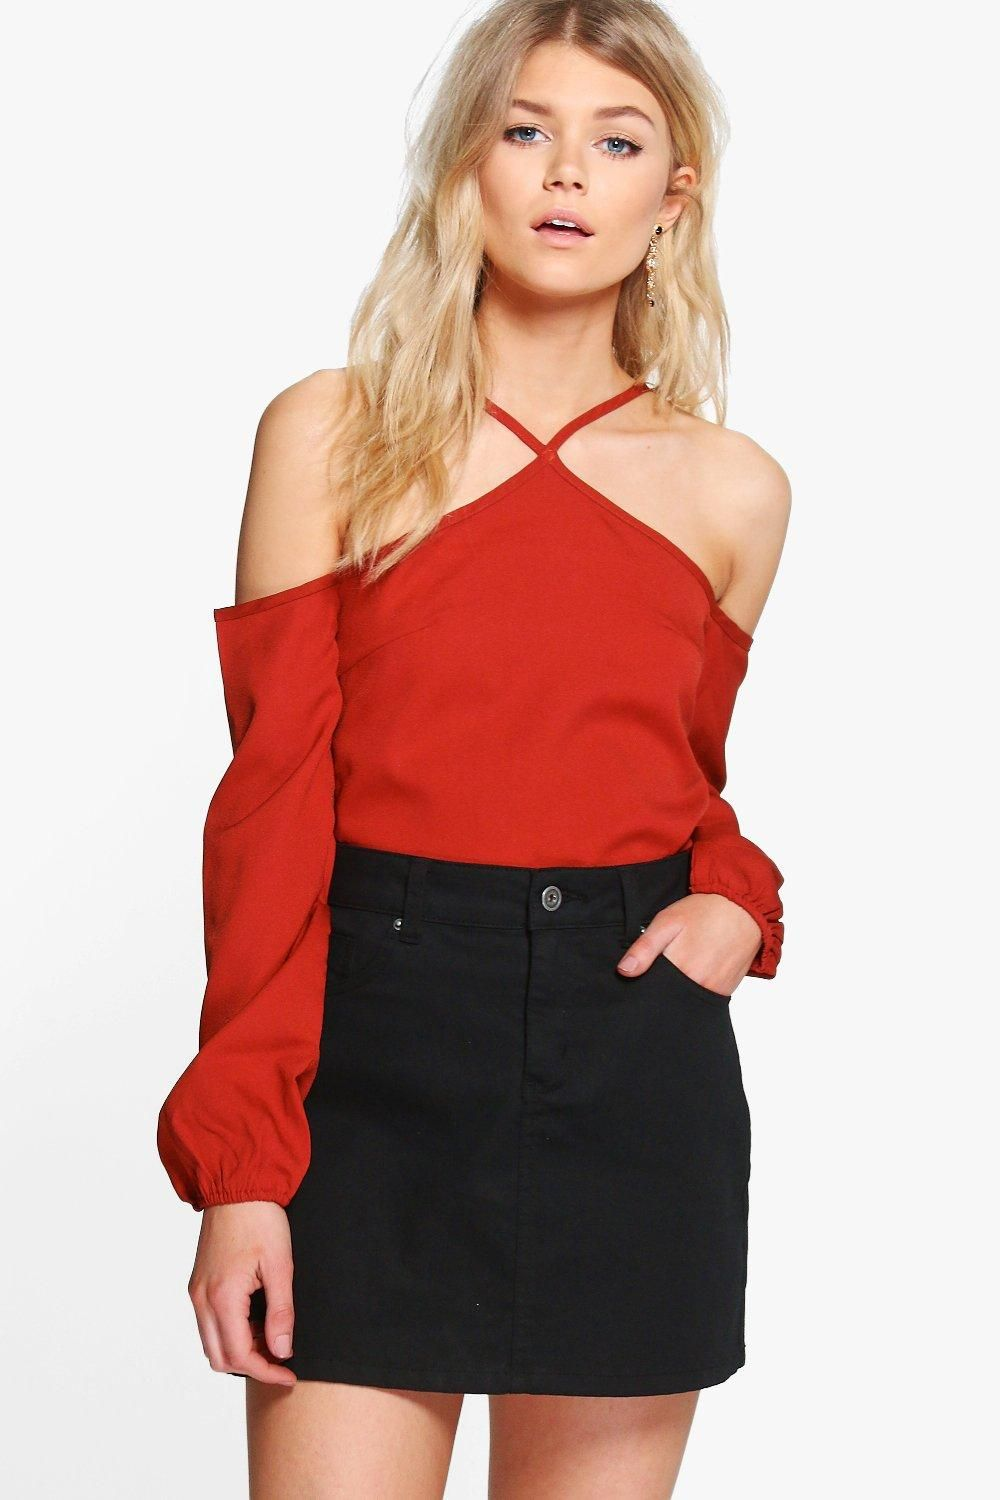 92831e22c4c11 boohoo PETITE. Serving up the same statement styles in scaled down sizes, boohoo  Petite